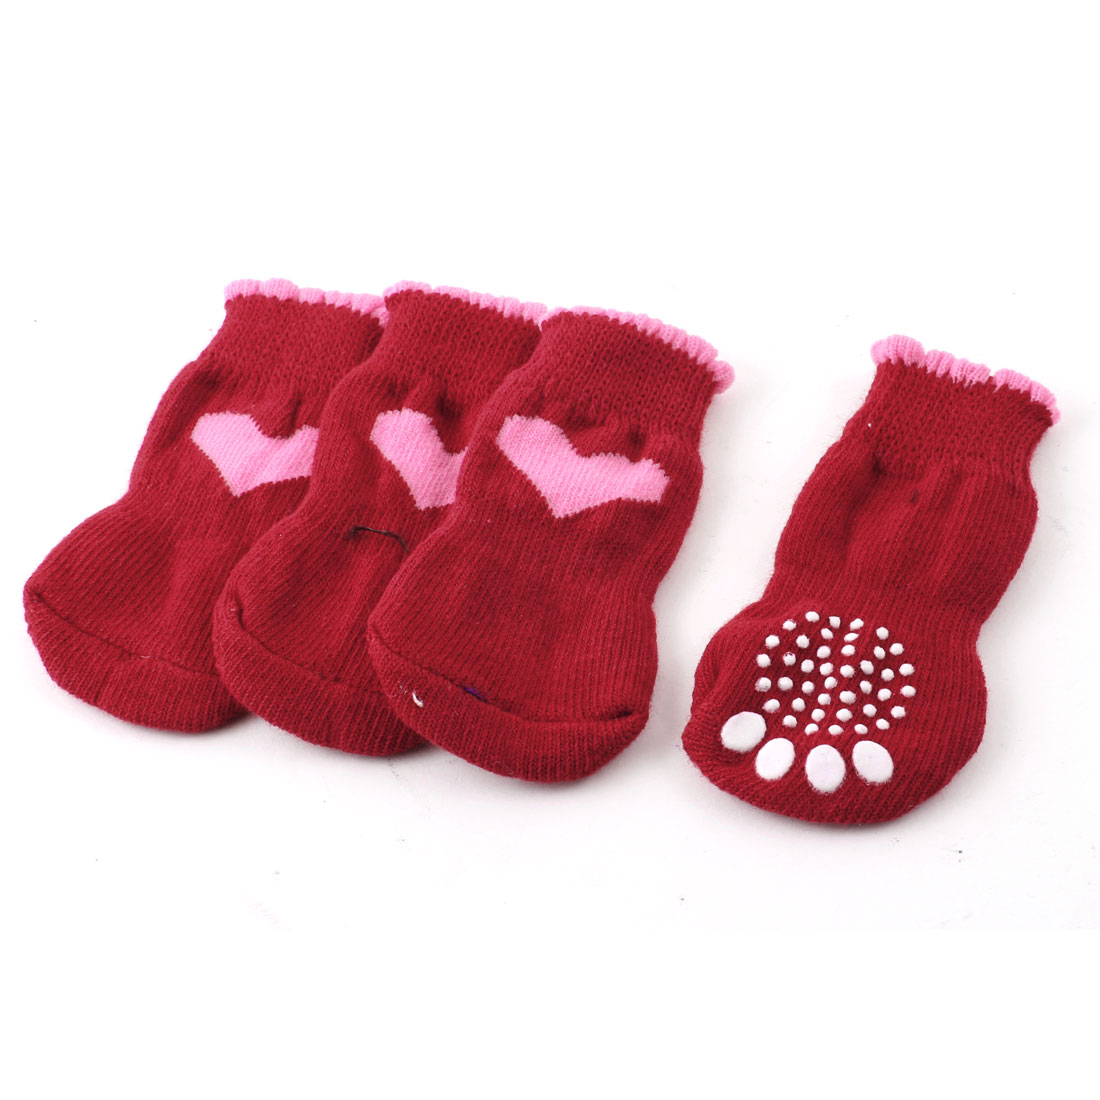 2 Pairs Red Pink Knitting Heart Paw Pattern Elastic Pet Puppy Dog Socks